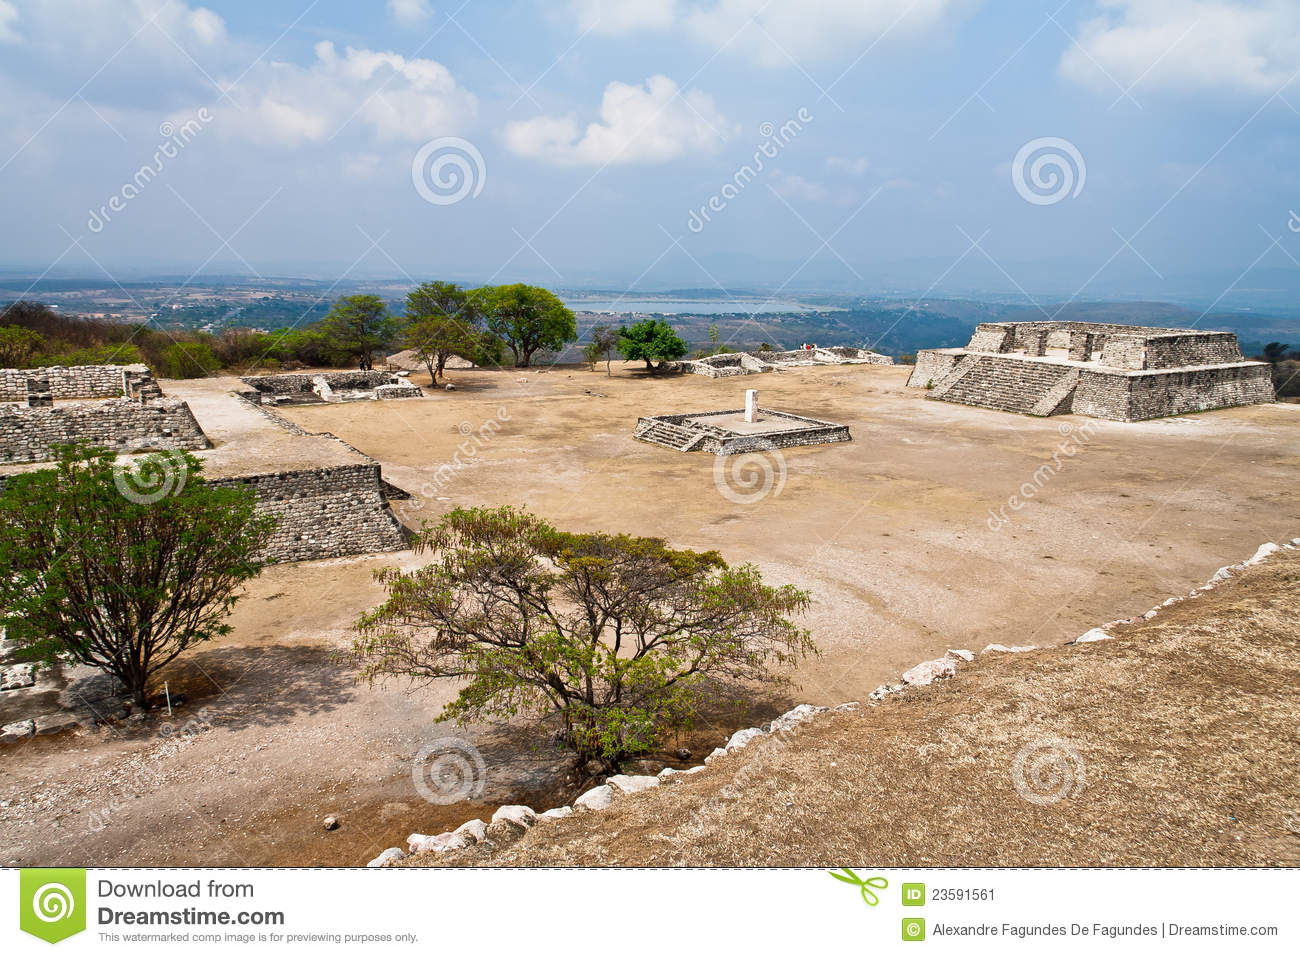 8011346797 as well Toltec Ruins further Na 1001 as well File Bandelier National Monument in September 2011   Cliff Dwellings   roof post holes as well Uxmal House Of Doves Yucatan Mexico. on ruins in mexico